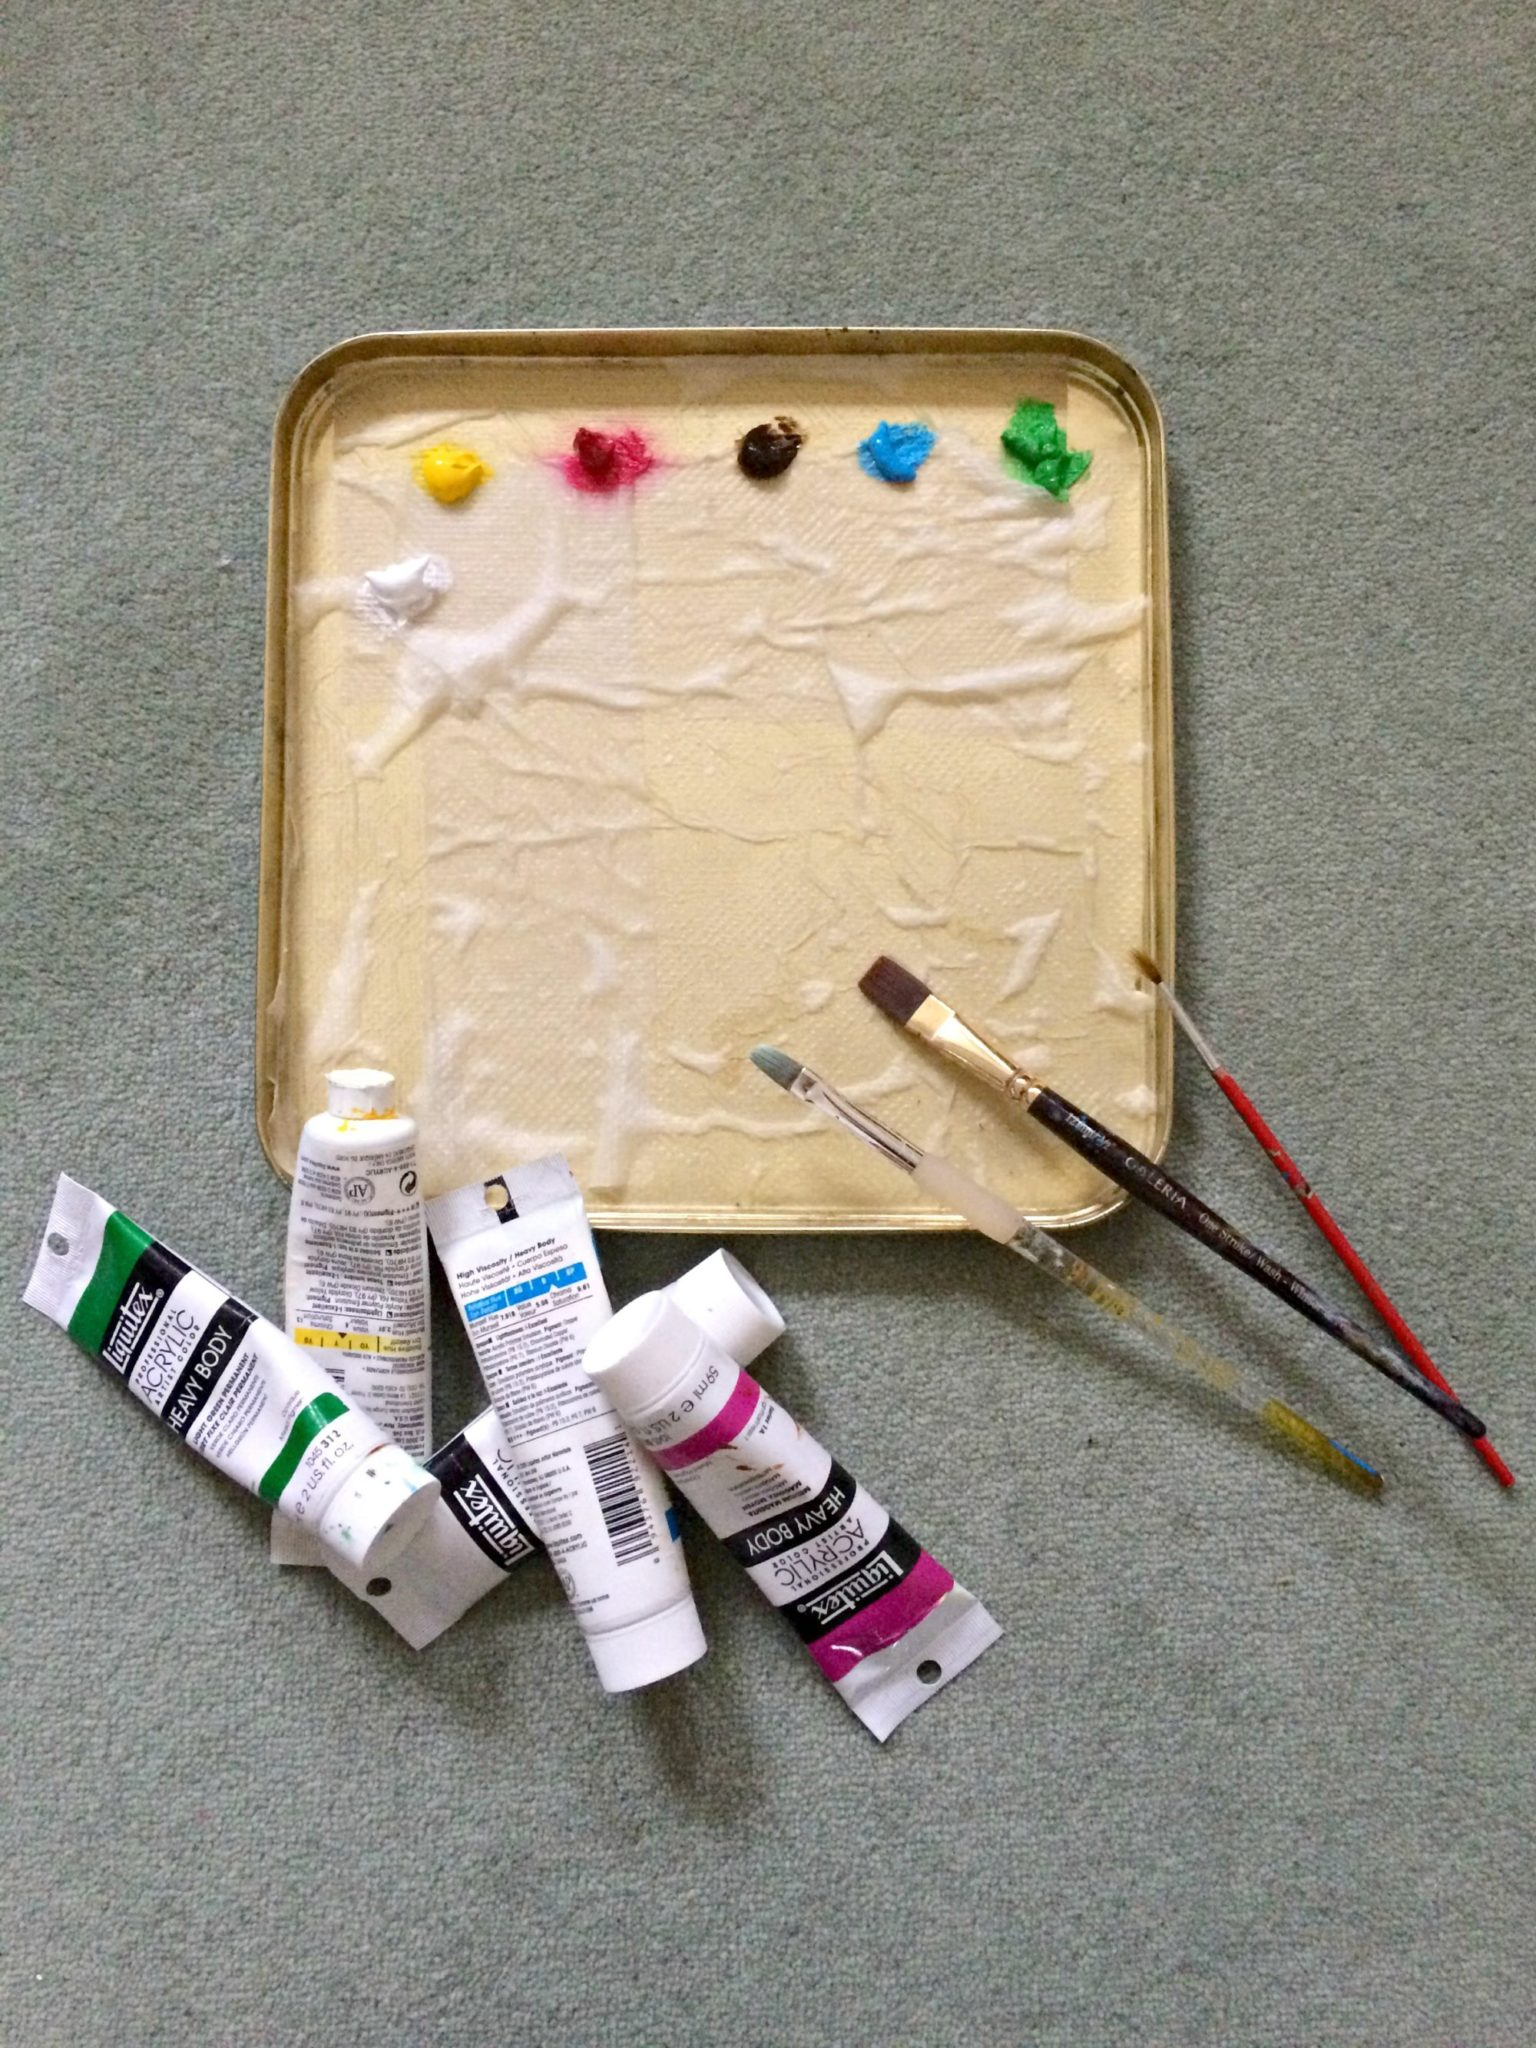 Palette color by color with acrylic paint